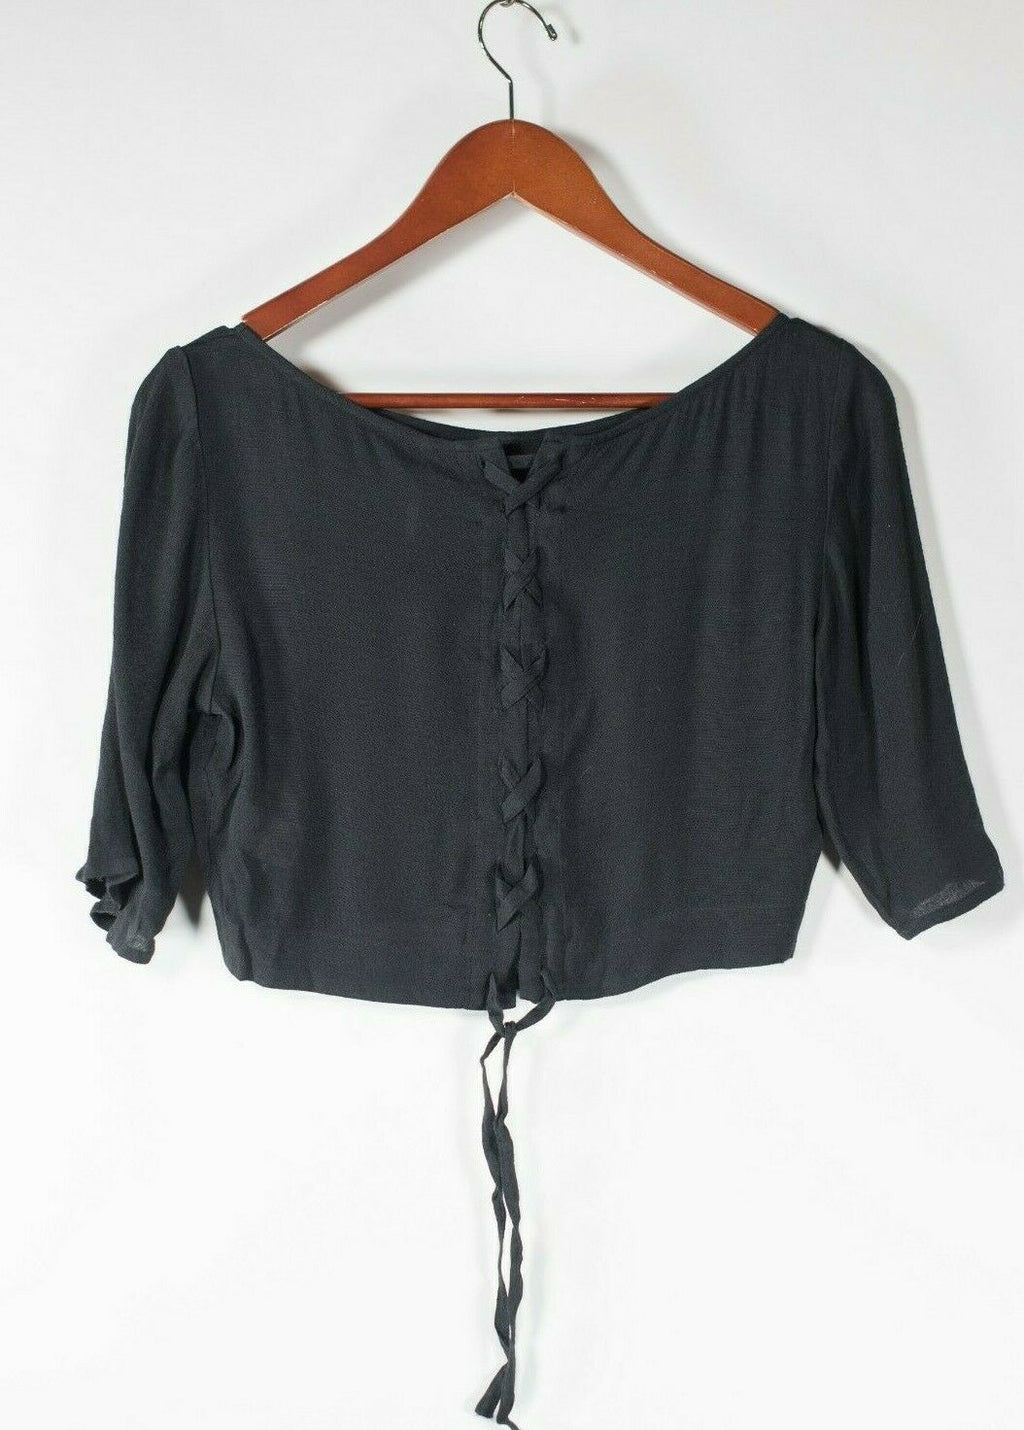 Free People Women's Size XS Black Blouse Rayon Tie Up Back Shirt 3/4 Sleeve Top